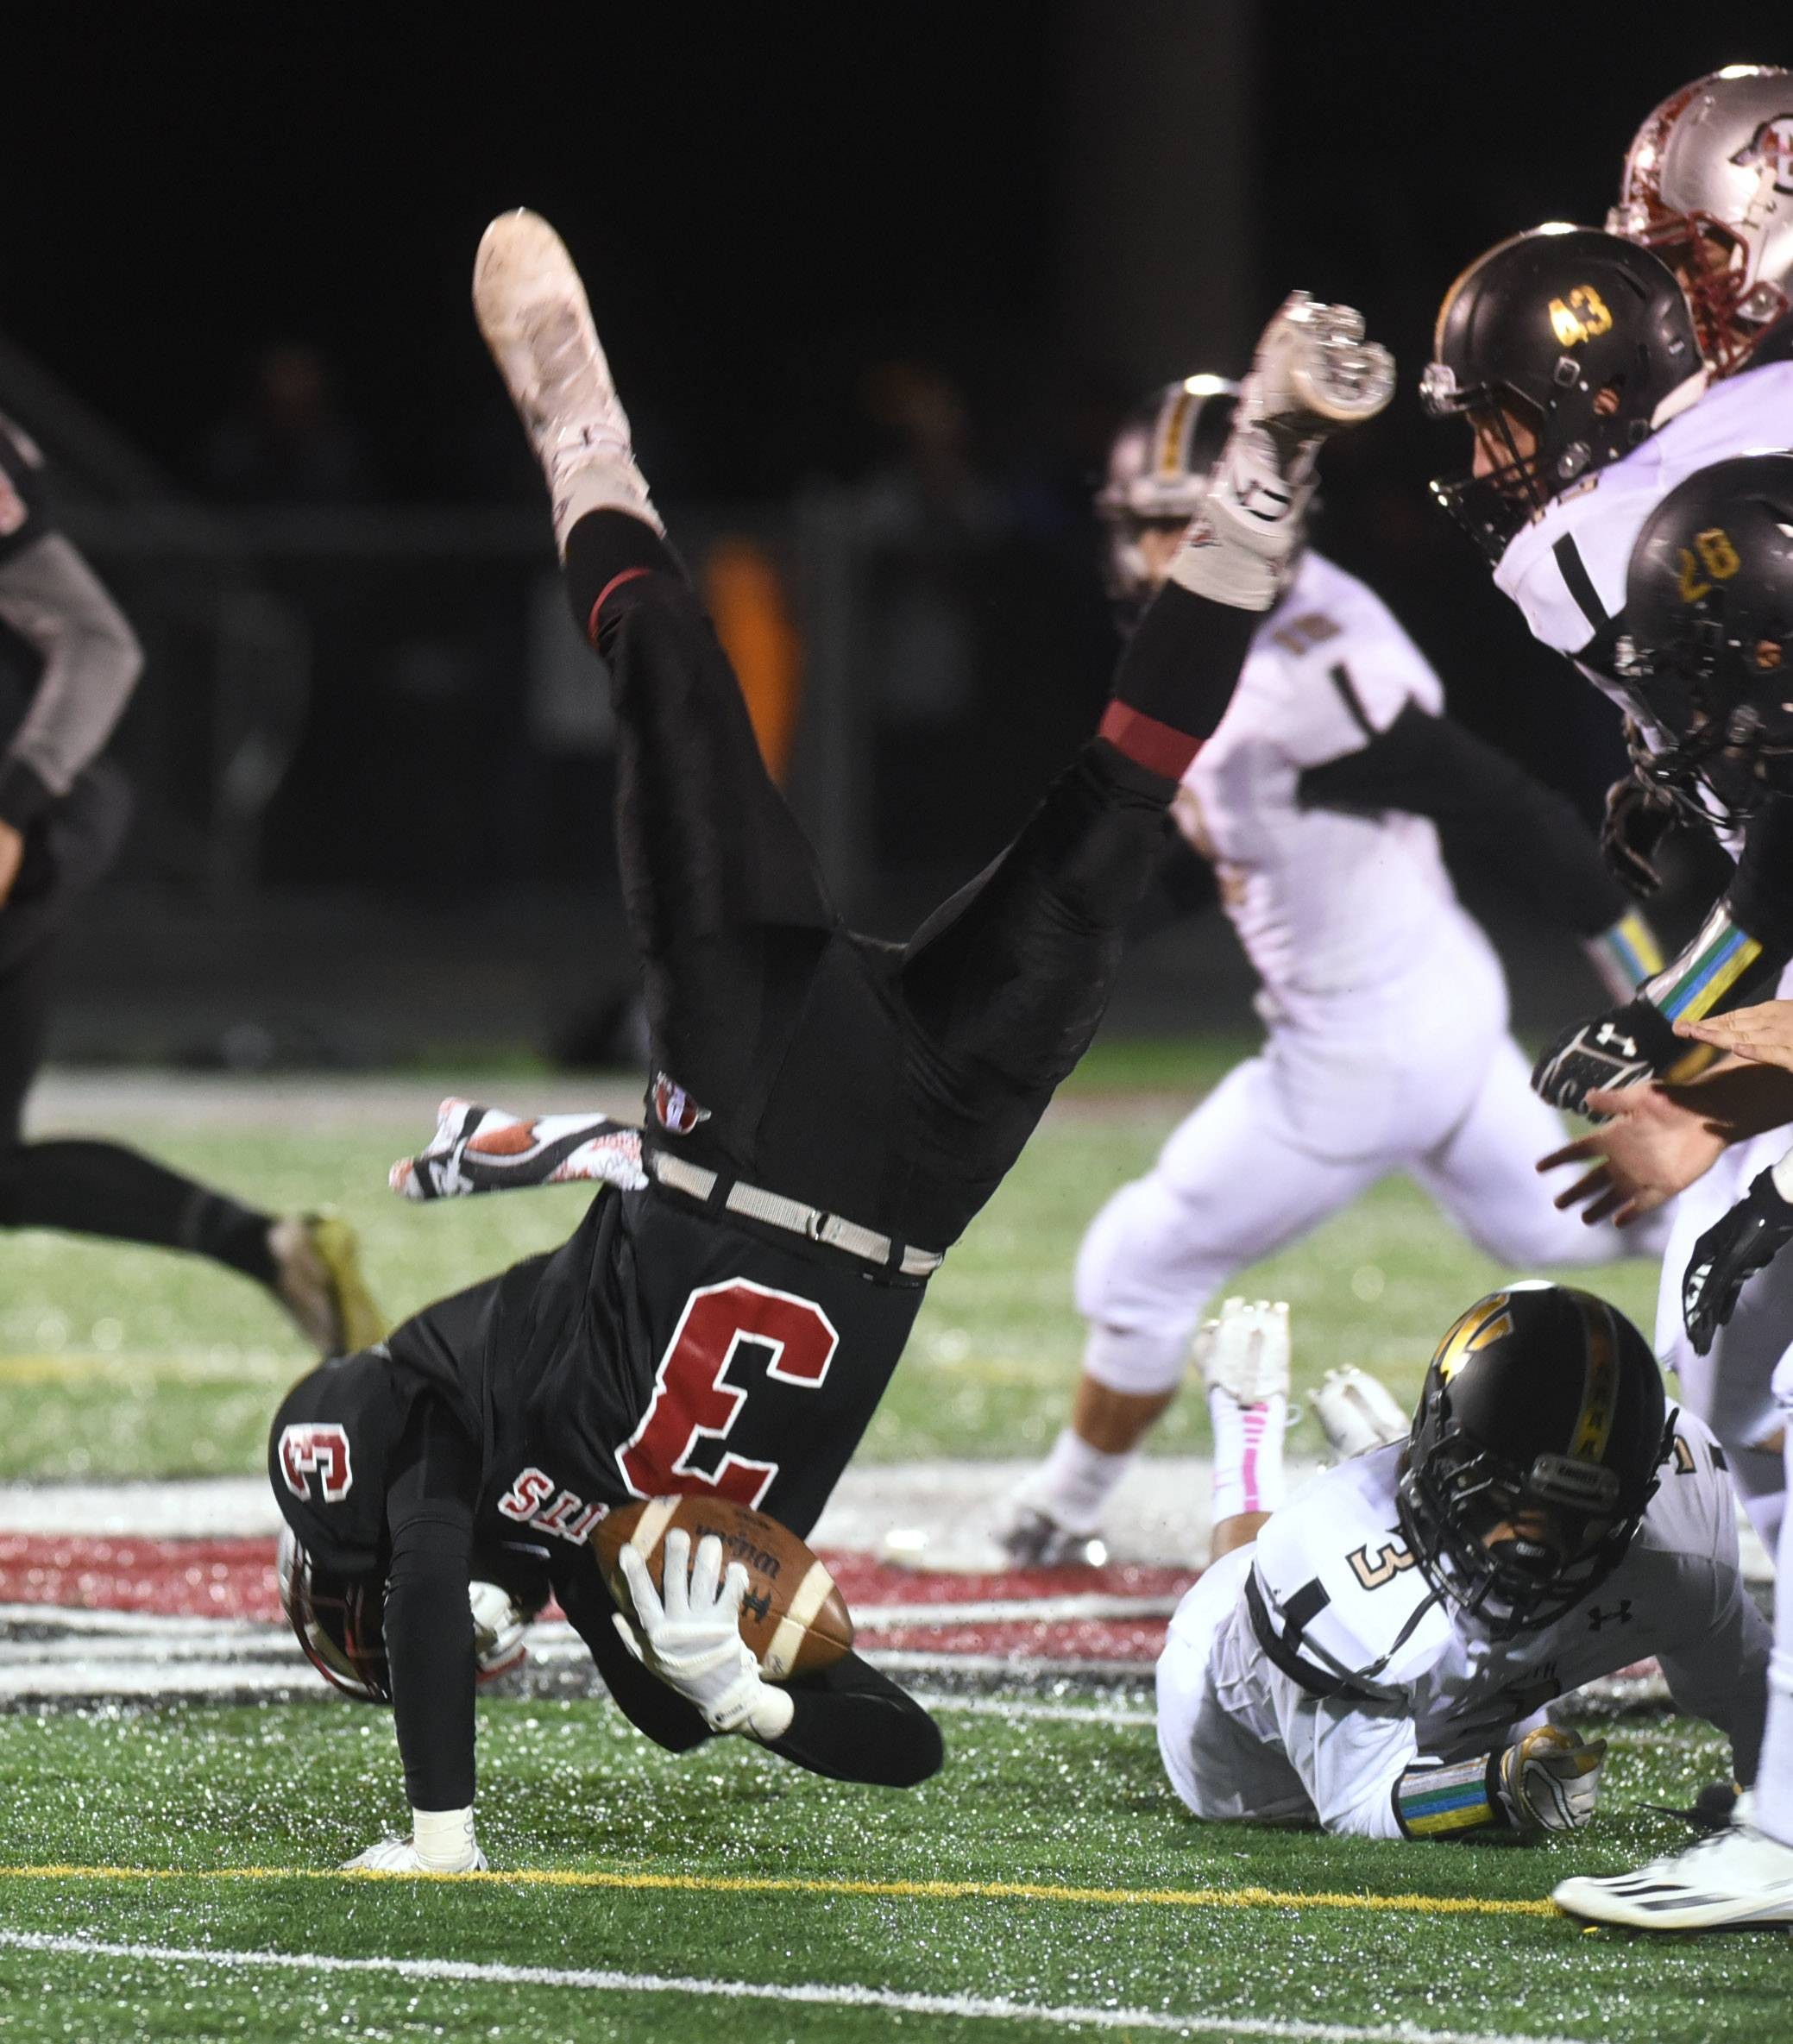 Antioch's Drew Porter (3) is upended by Grayslake North's Sam Nayyer (3) during the first half of Friday in Antioch. The Sequoits drew a No. 2 seed in Class 6A and will meet Wauconda, while No. 6 Grayslake North is matched up against Lakes in first-round playoff games.